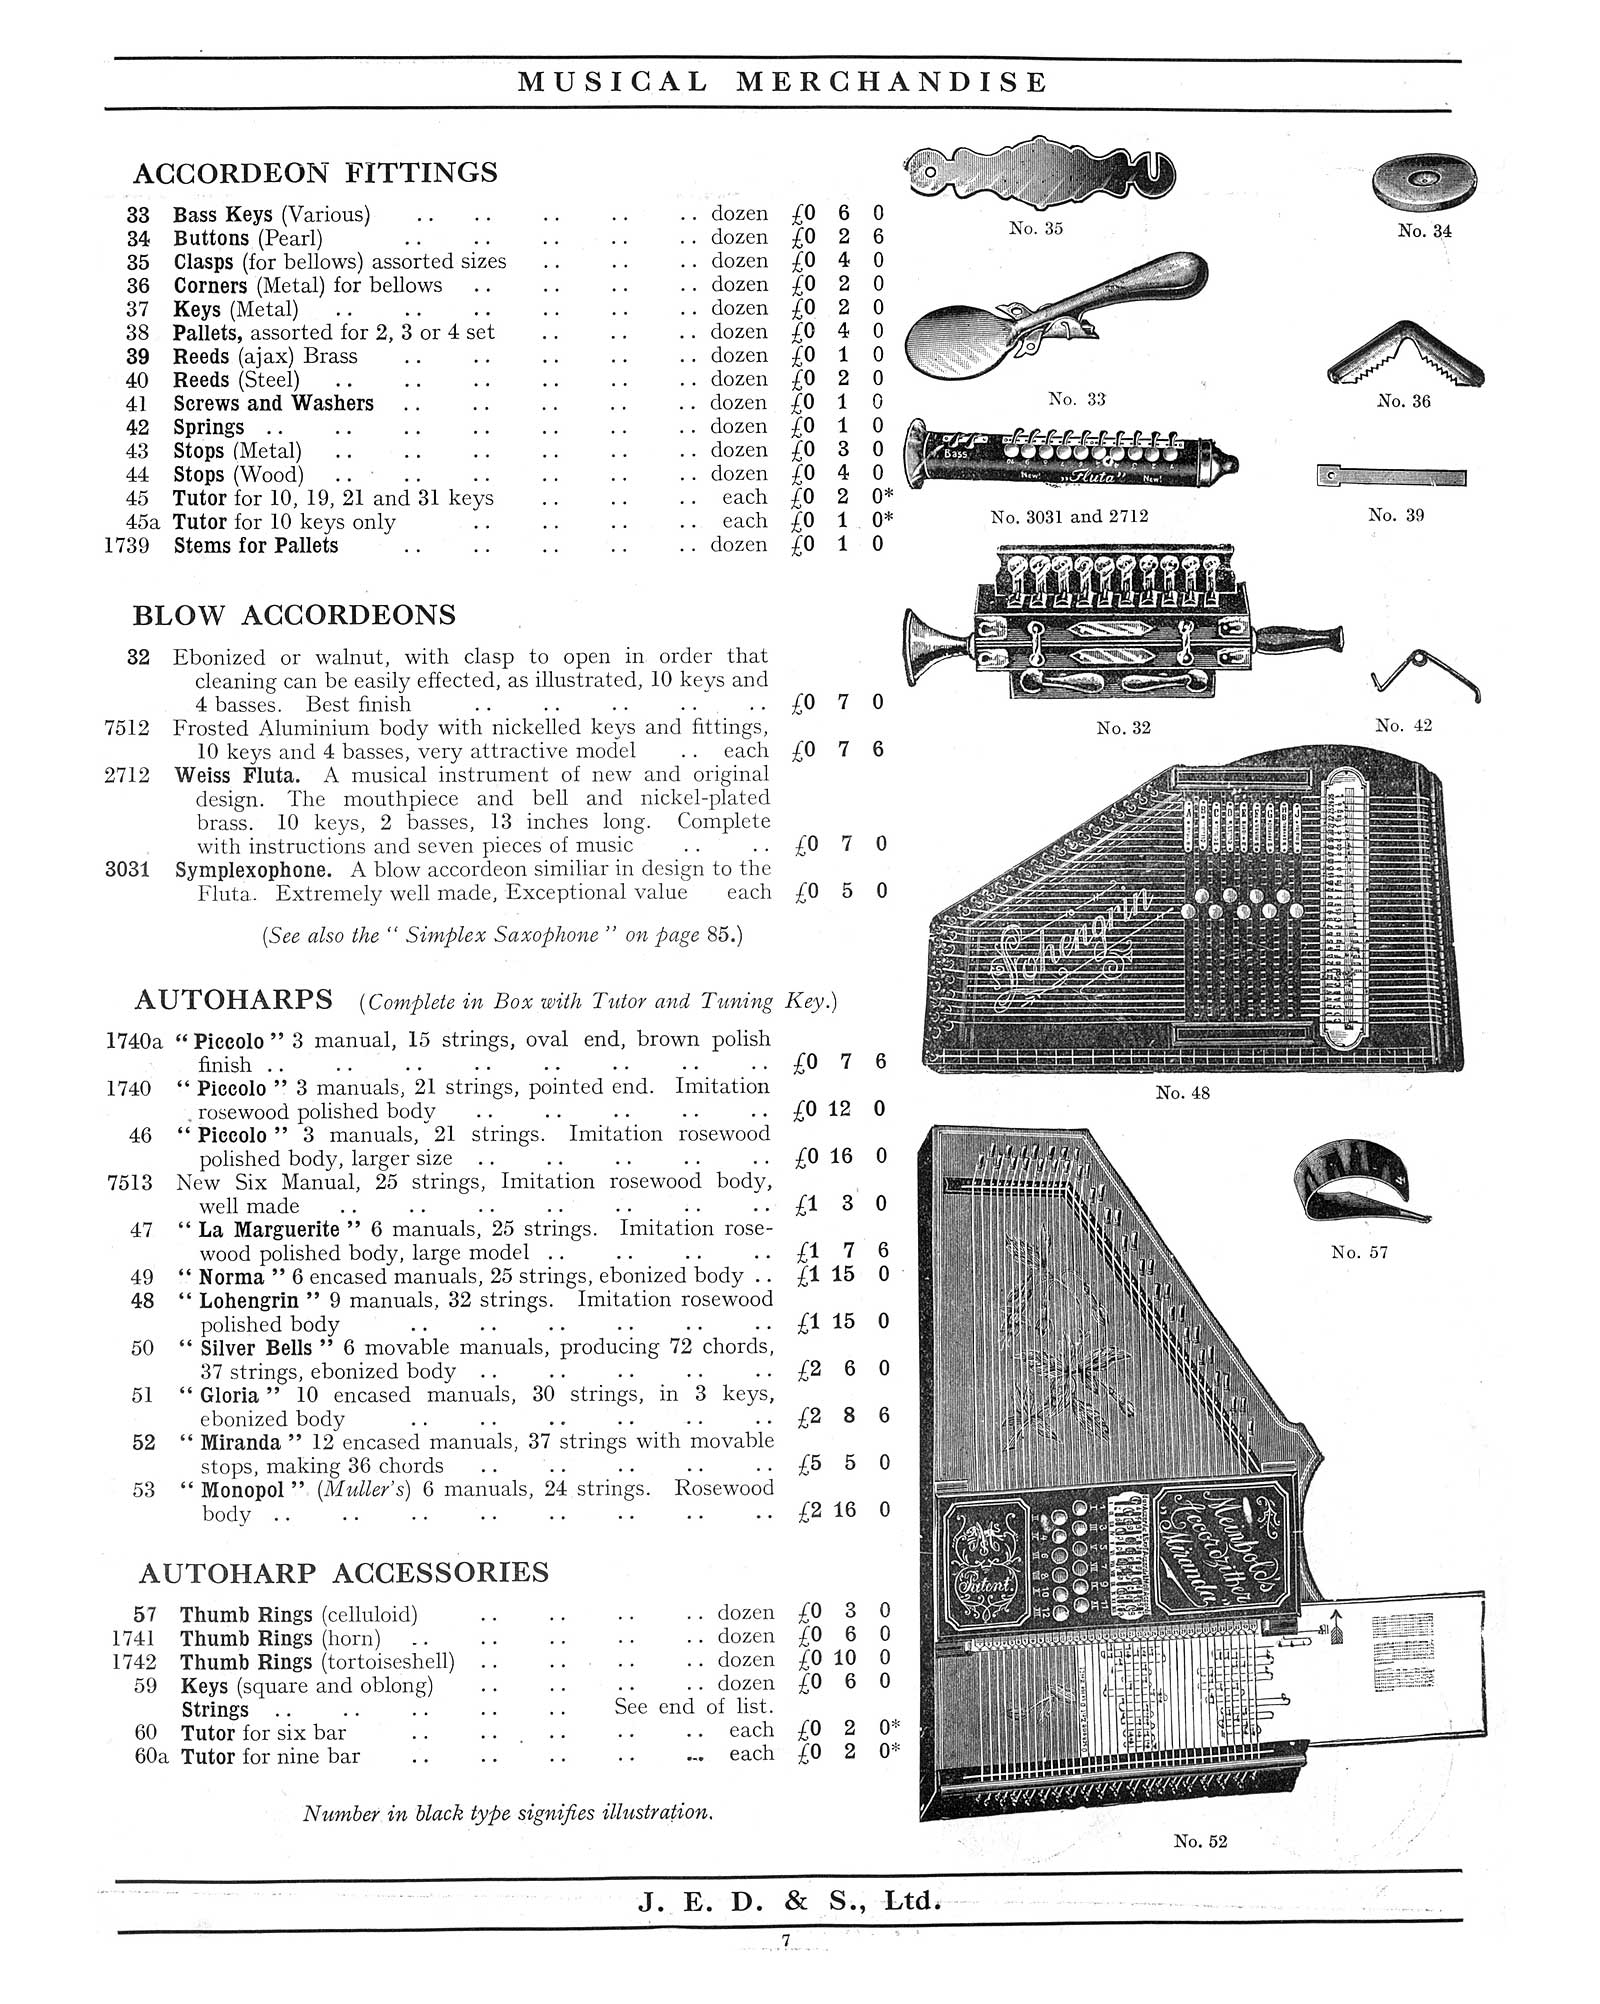 "1930 Jedson & Mastertone catalogue, vintage catalogue, sax-shaped ""things"", Weiss Fluta, blow accordions"